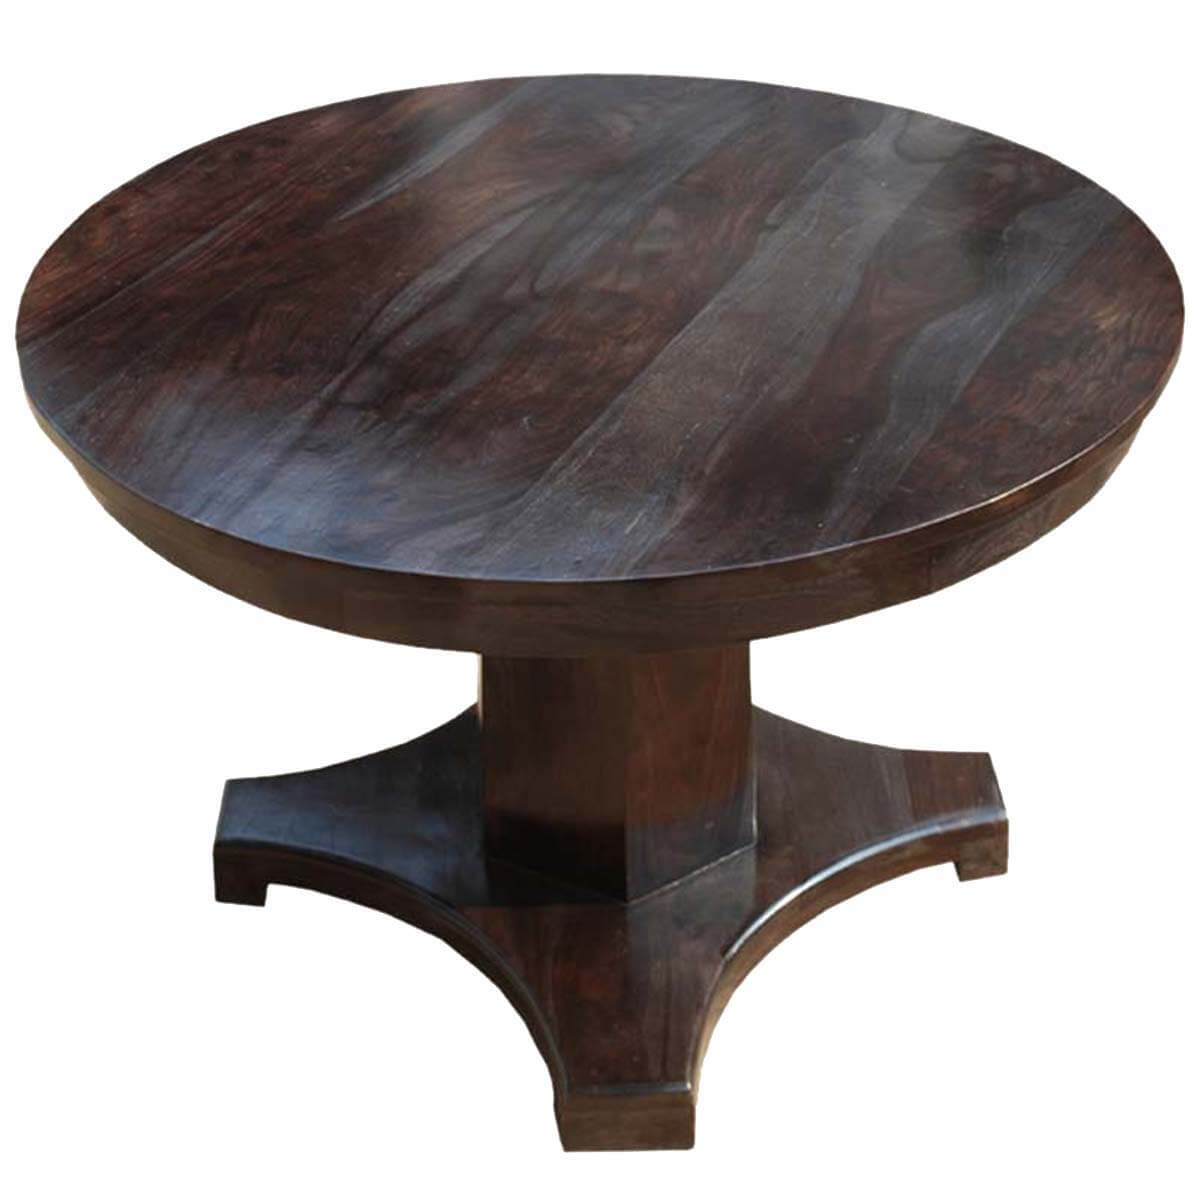 Solid Wood Sutton Rustic Round Pedestal Dining Table For 4 People